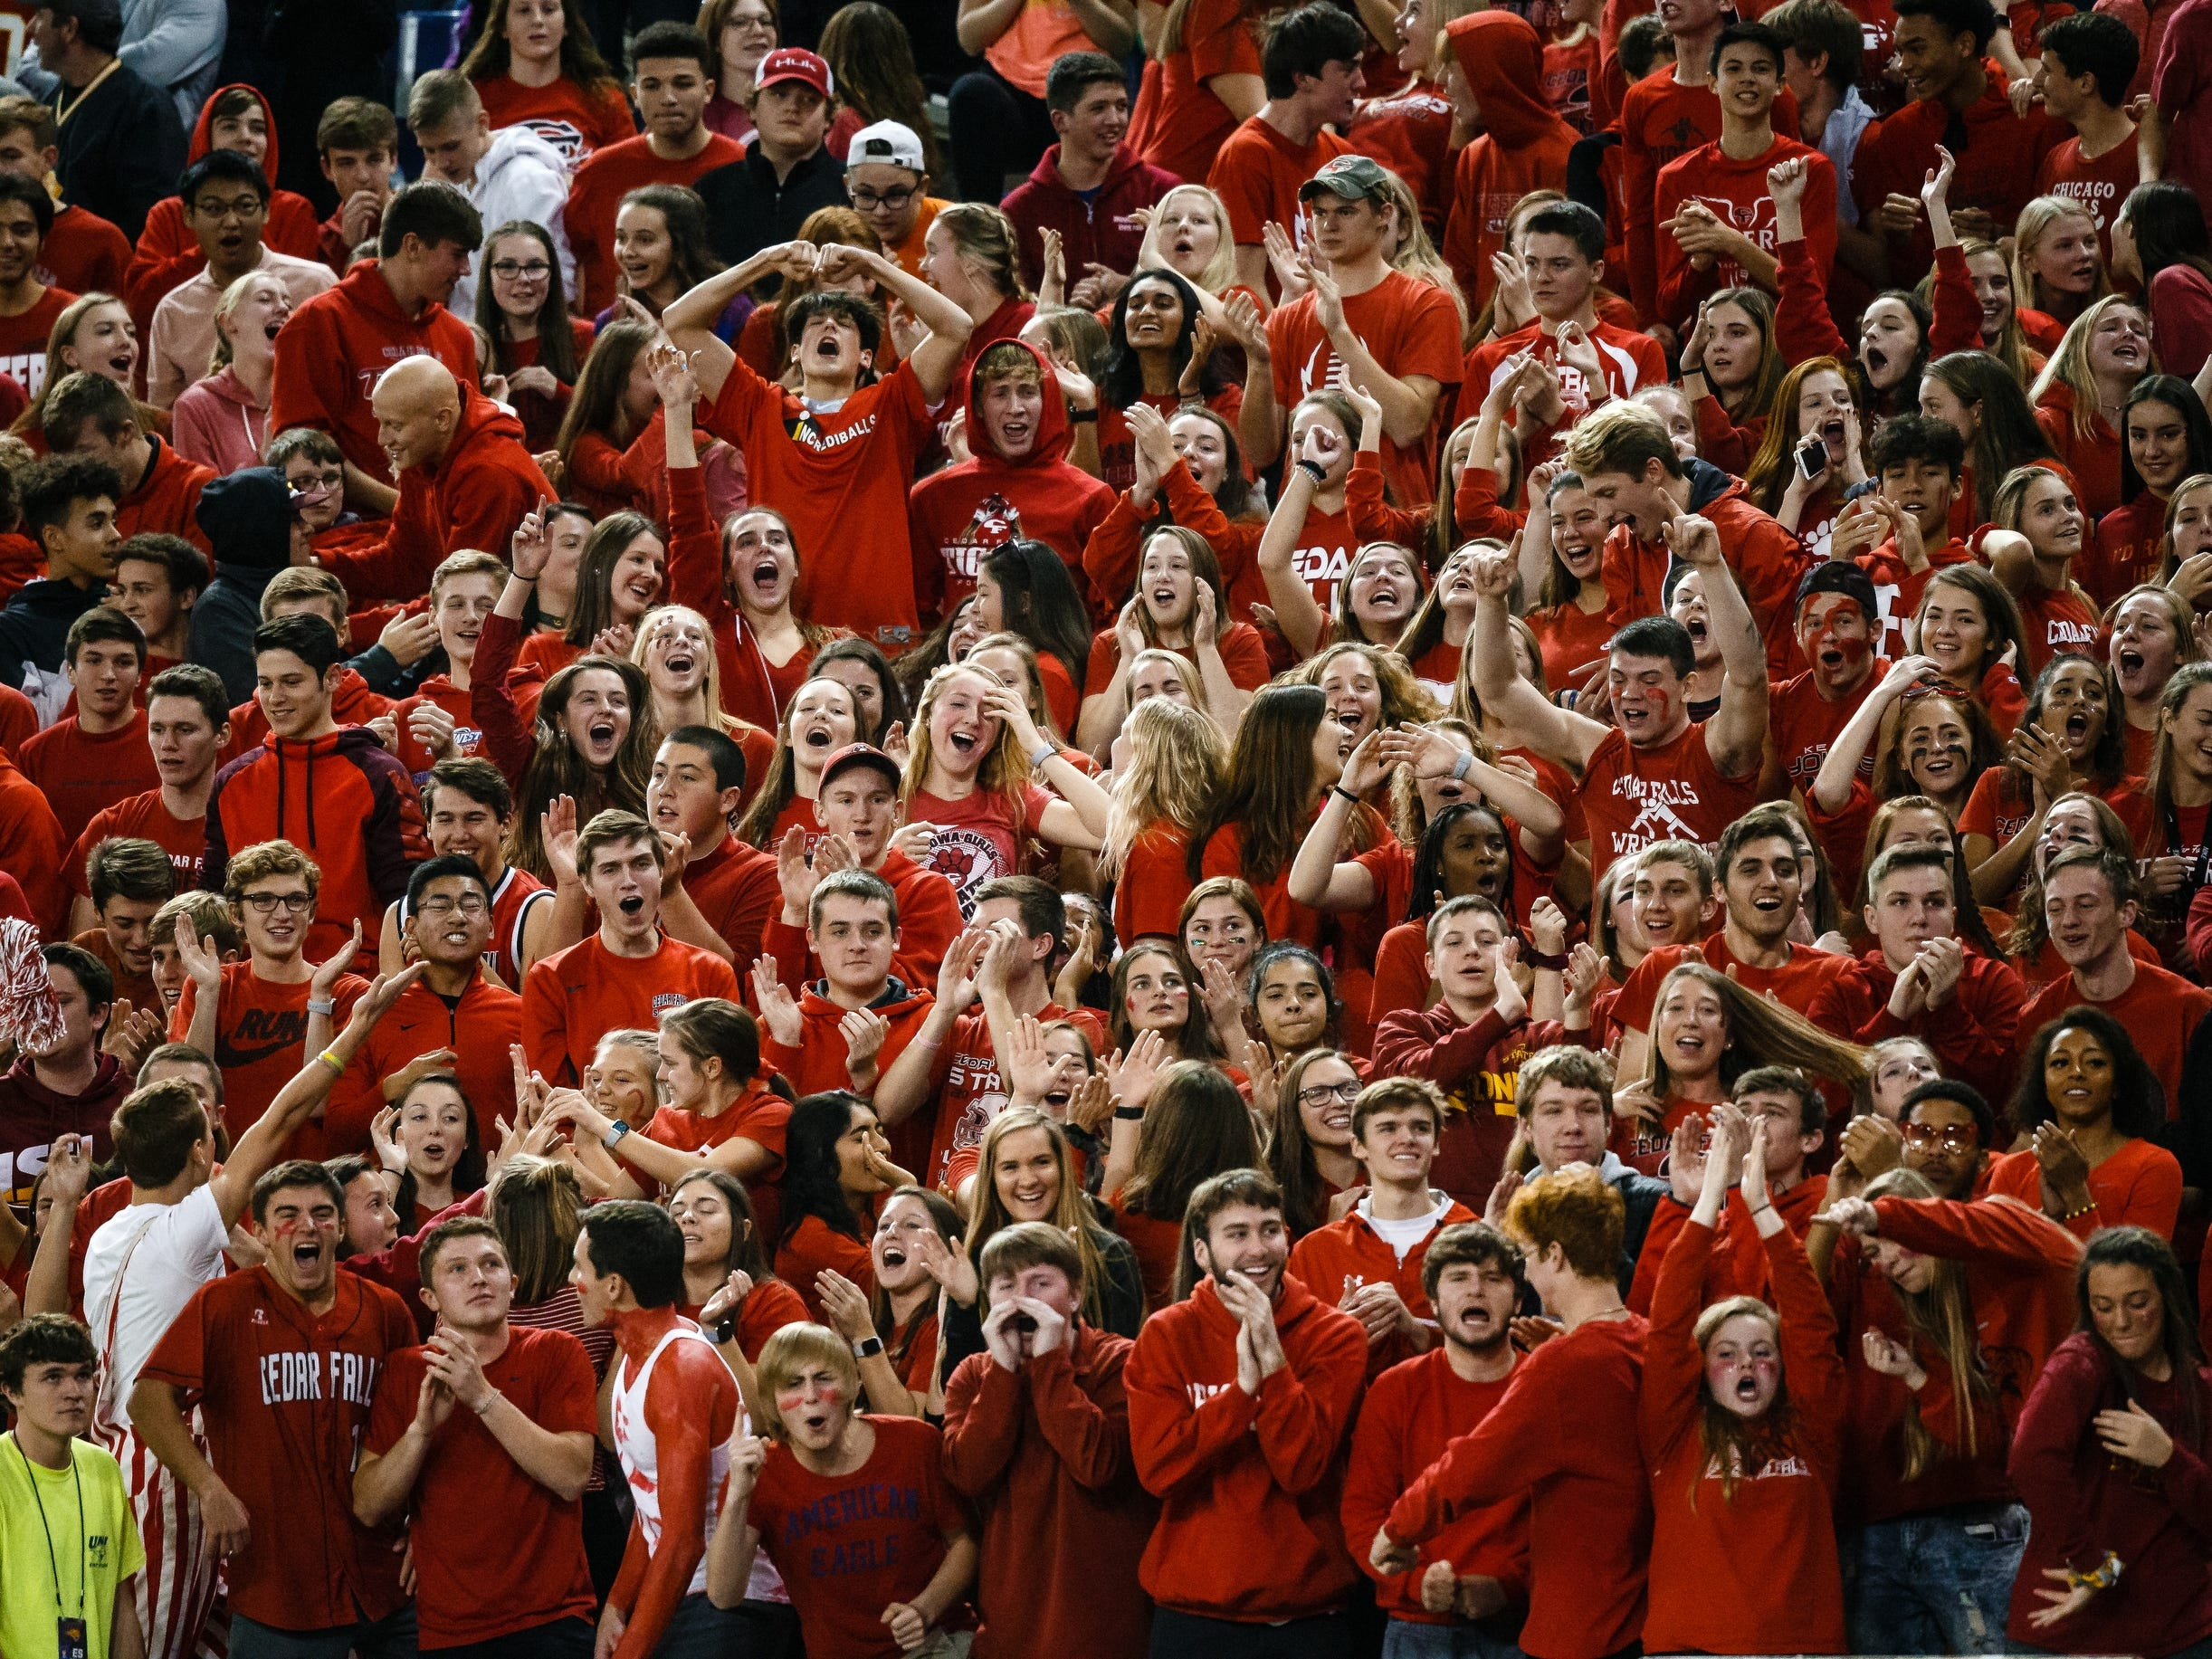 Cedar Falls fans cheer after a touchdown to put the Tigers up 6-0 during their class 4A state championship football game against Dowling Catholic on Friday, Nov. 16, 2018, in Cedar Falls. Cedar Falls takes a 13-7 lead into halftime.